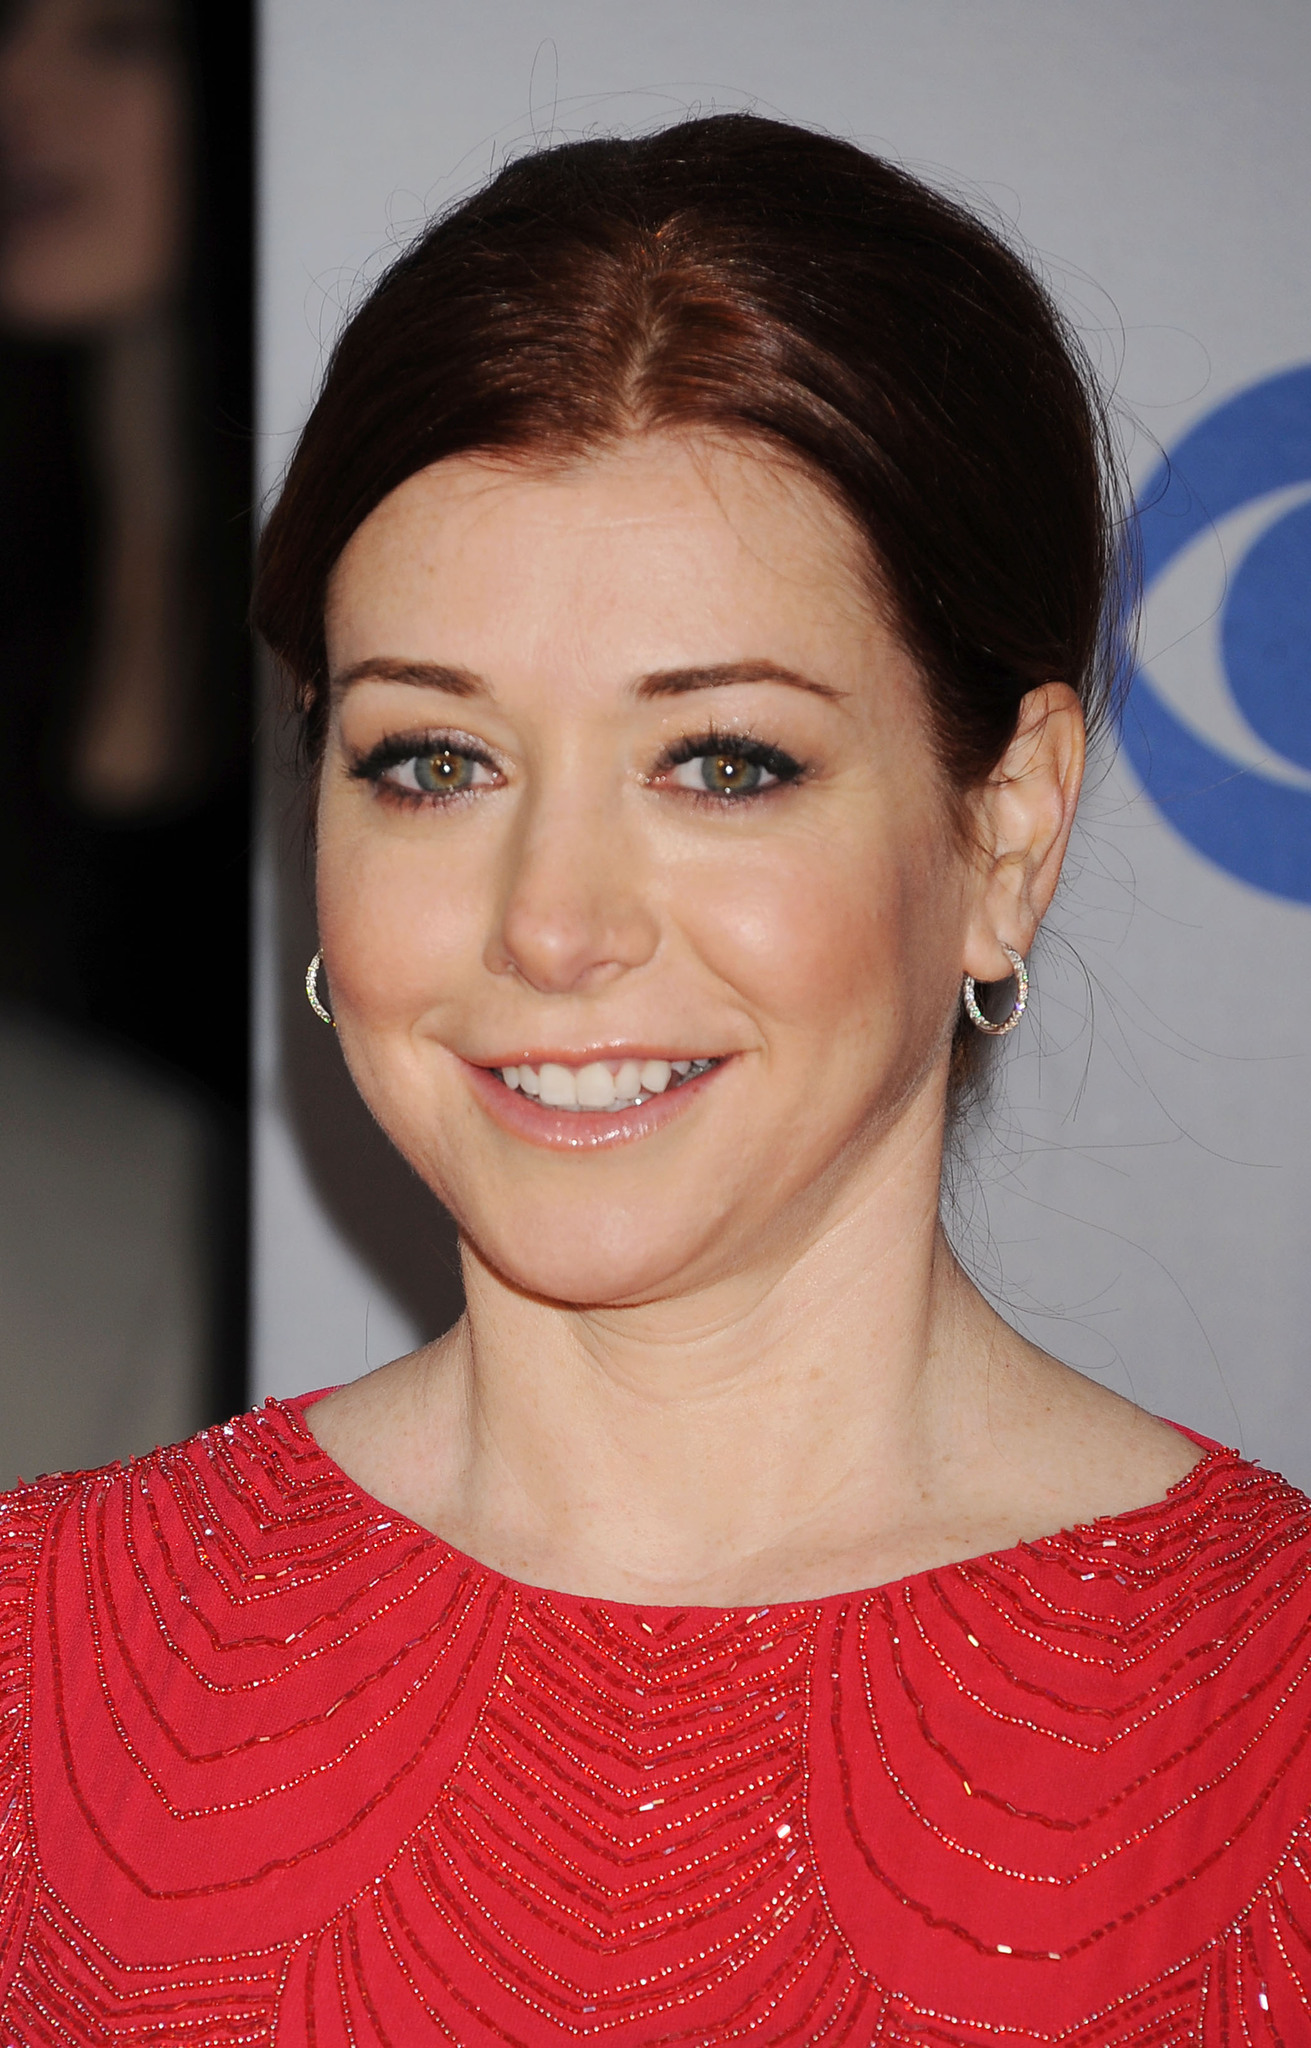 Alyson Hannigan nudes (23 photo), foto Fappening, Instagram, butt 2016